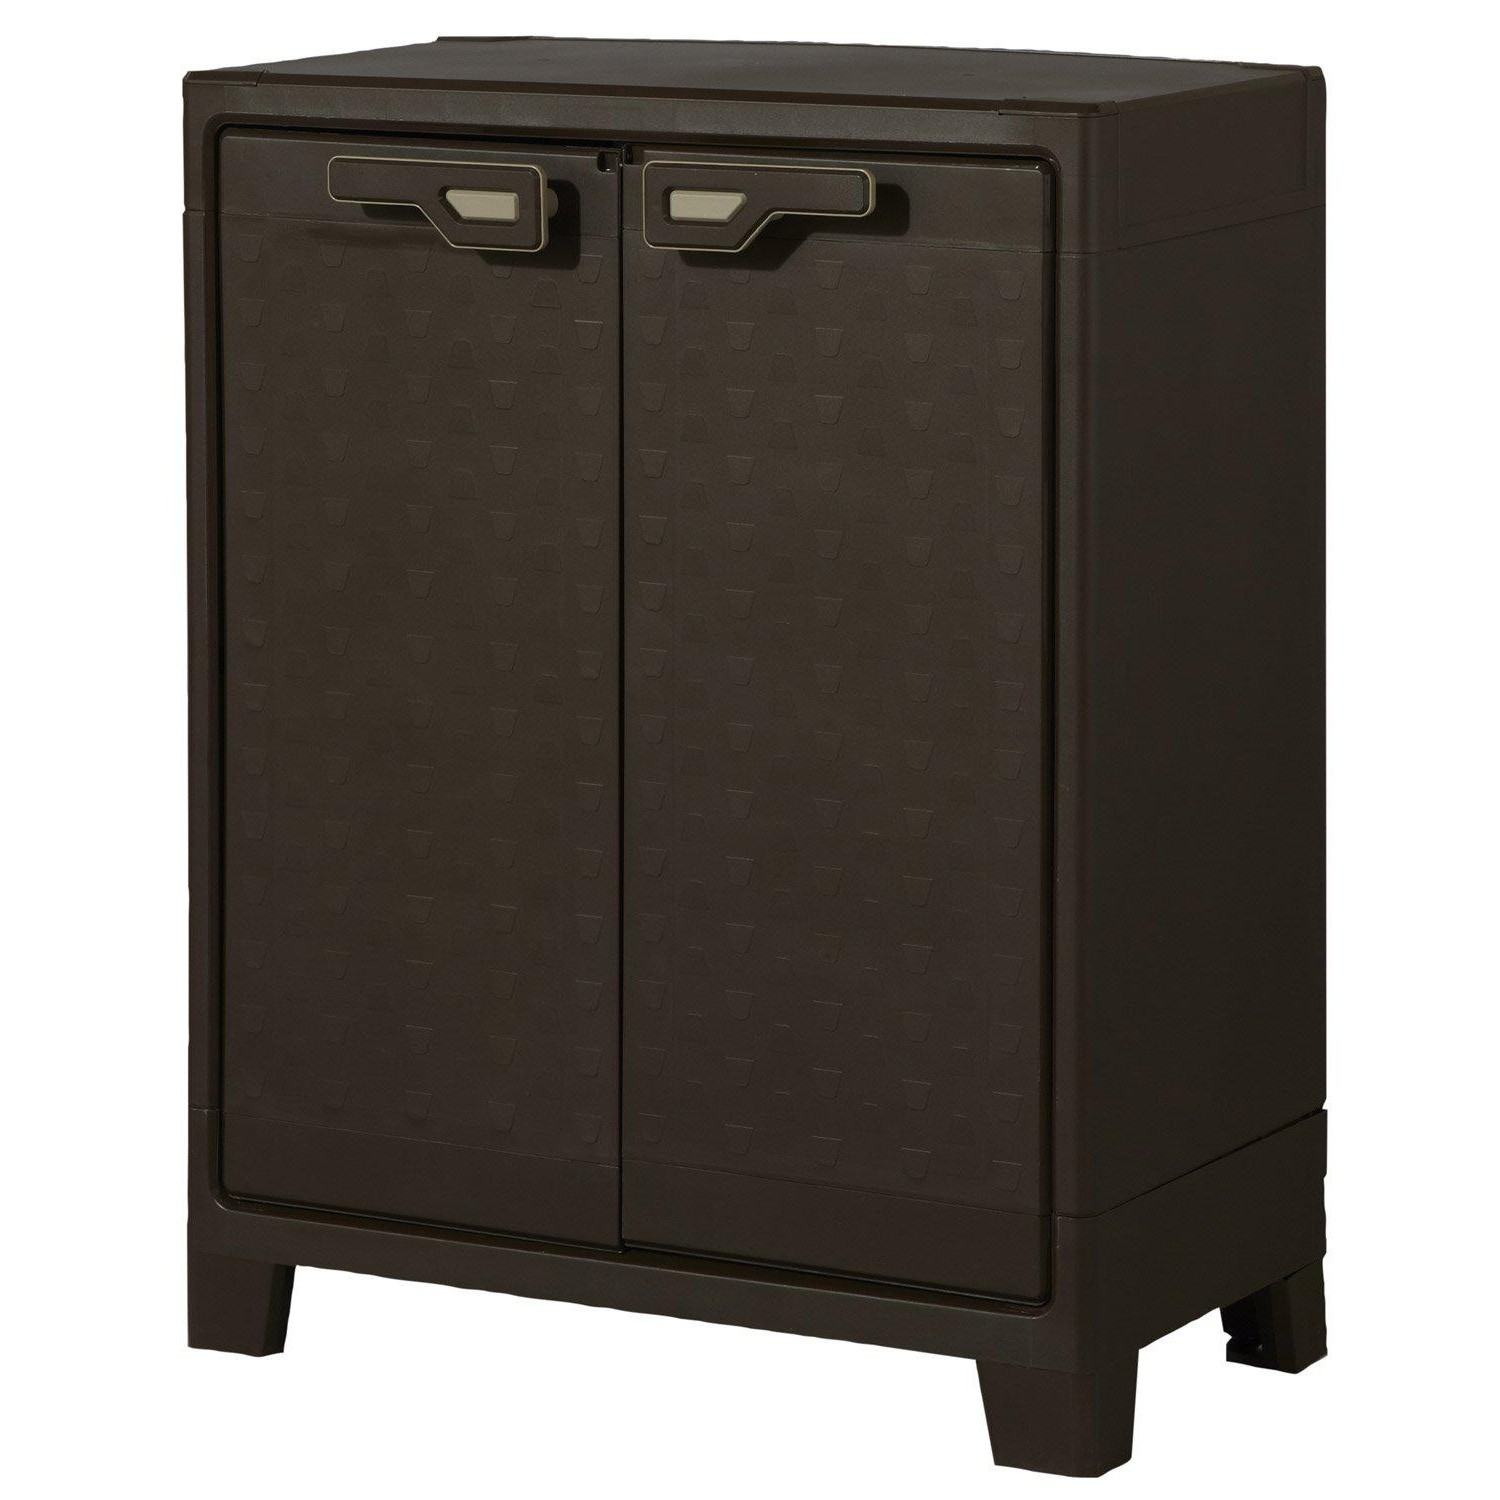 armoire de toilette leroy merlin elegant sduisante meuble. Black Bedroom Furniture Sets. Home Design Ideas